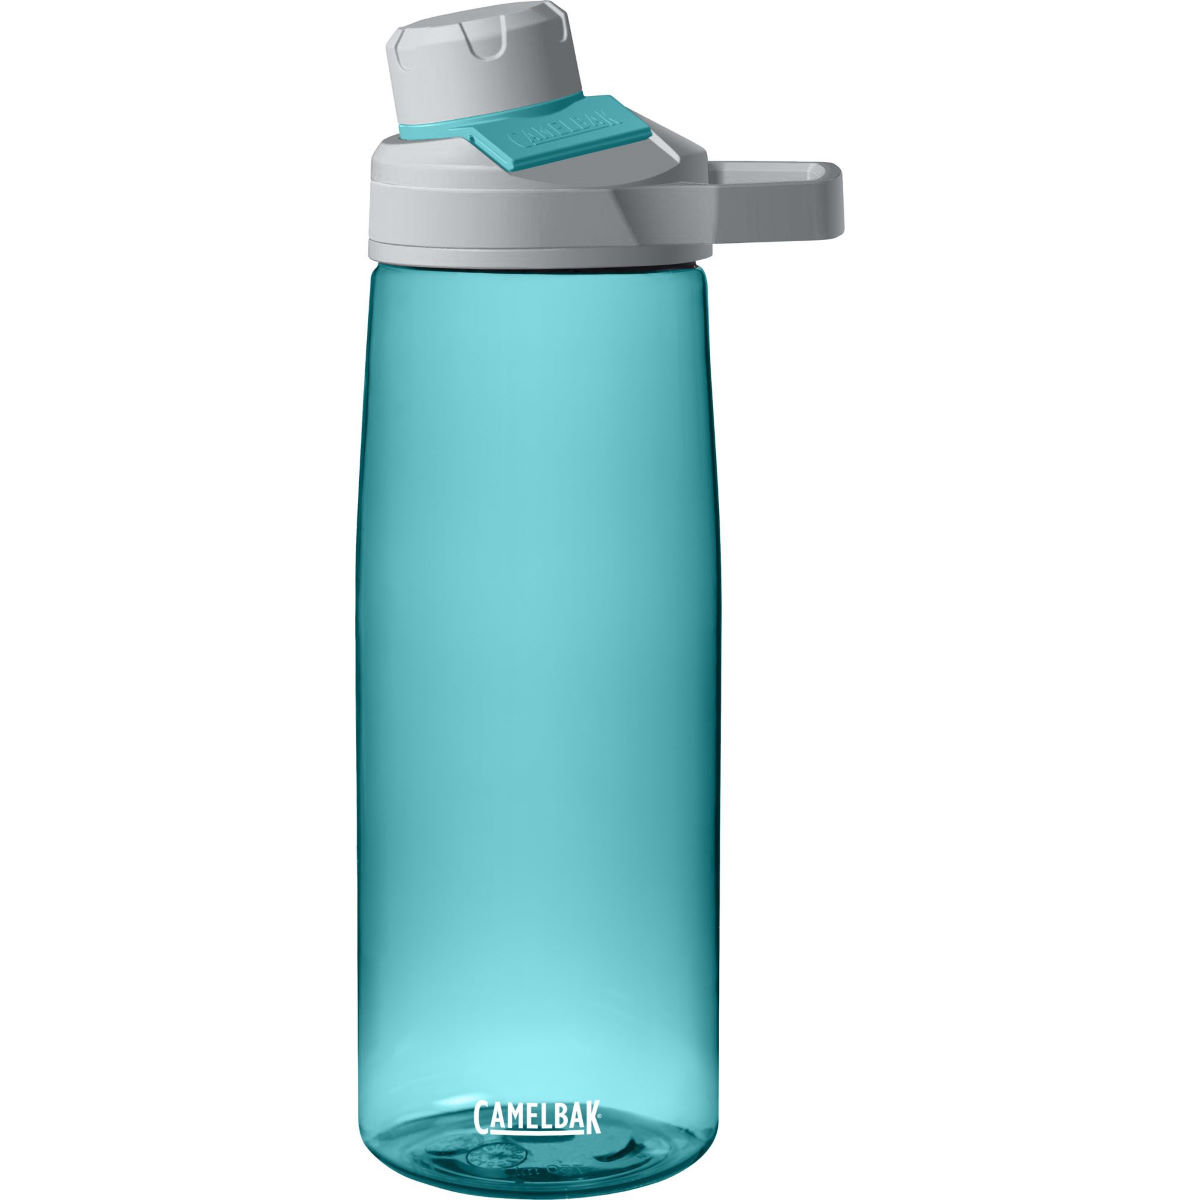 Camelbak Chute Mag 750ml Water Bottle - Bidones de agua